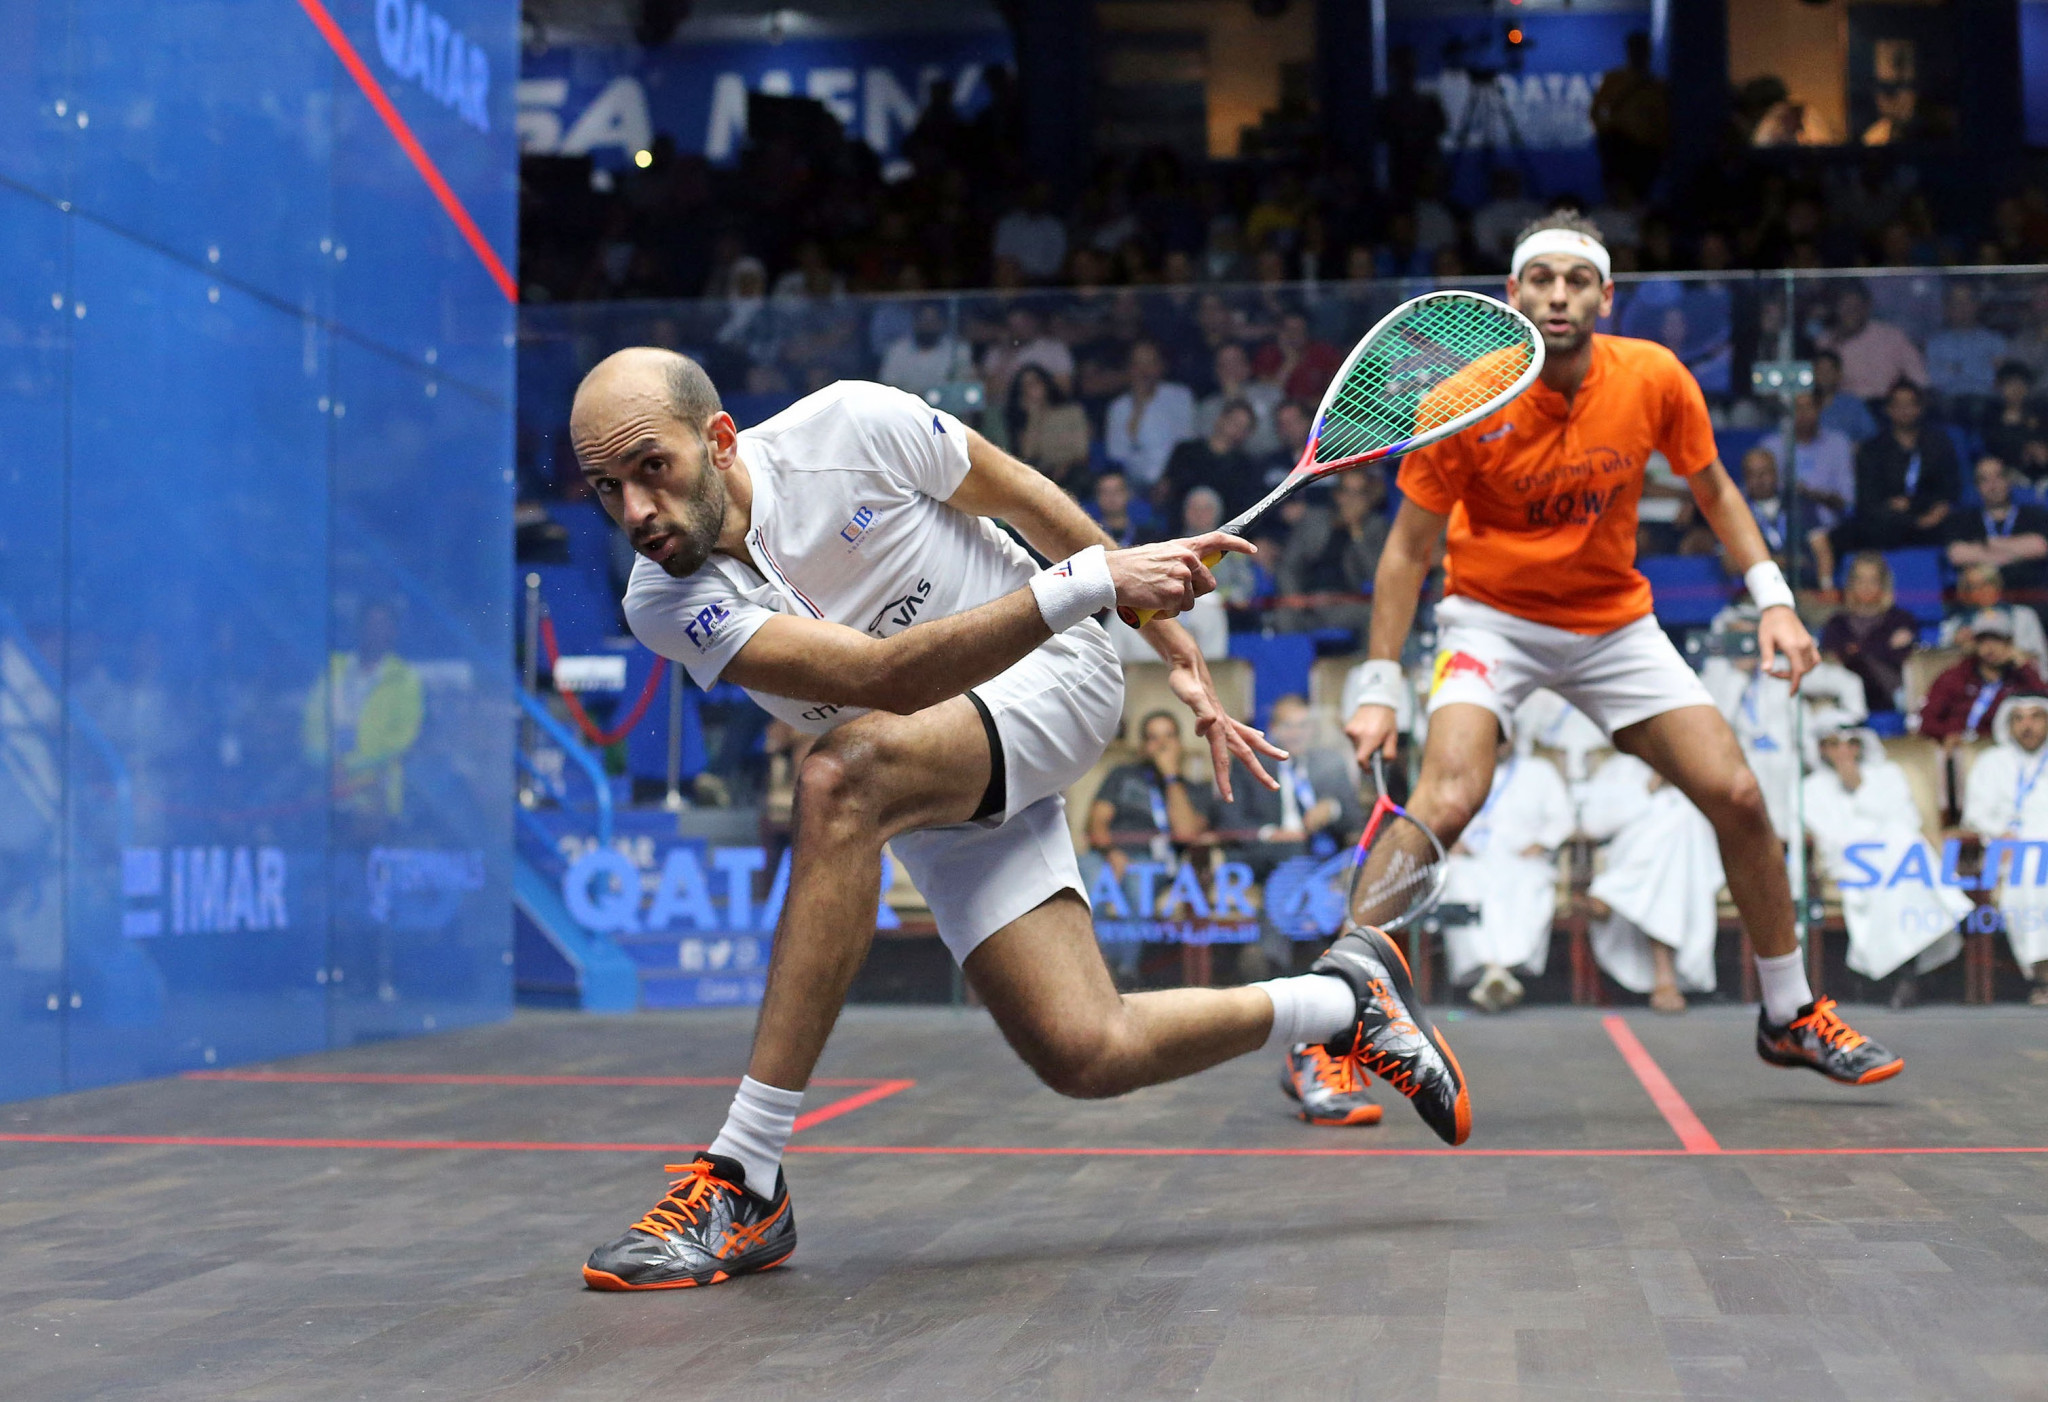 Marwan ElShorbagy stuns brother to reach PSA Men's World Championship semi-finals